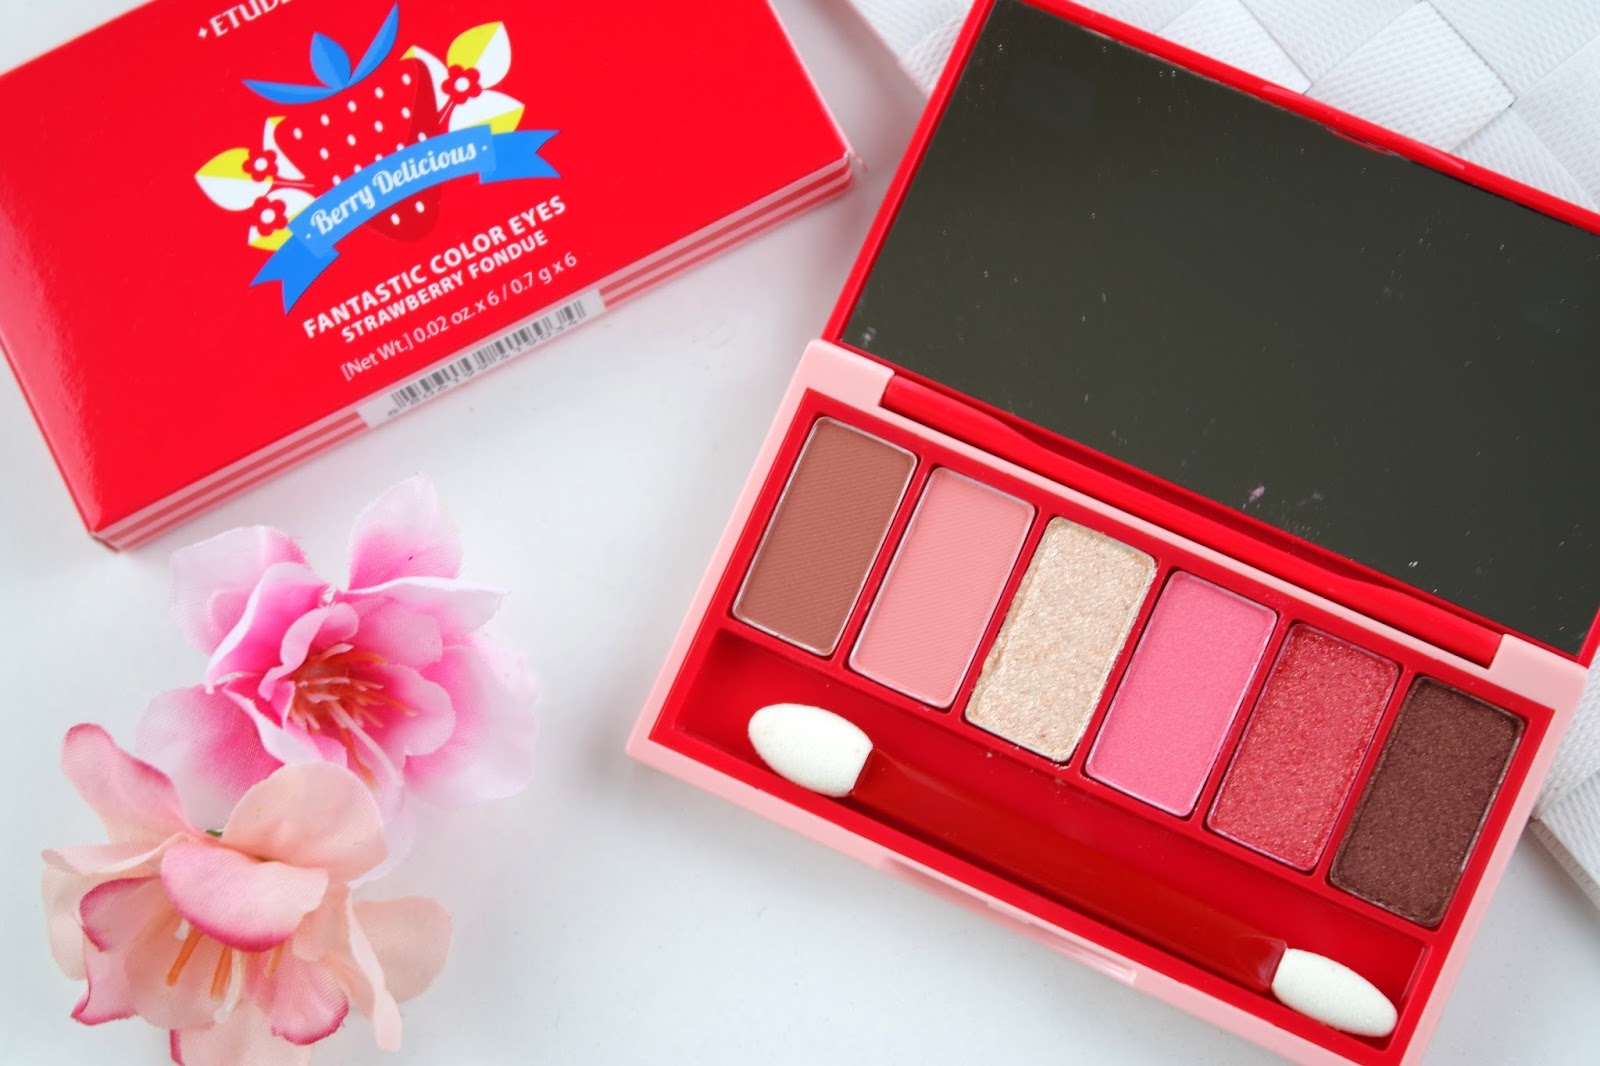 Etude House Berry Delicious Eye Palette - Strawberry Fondue